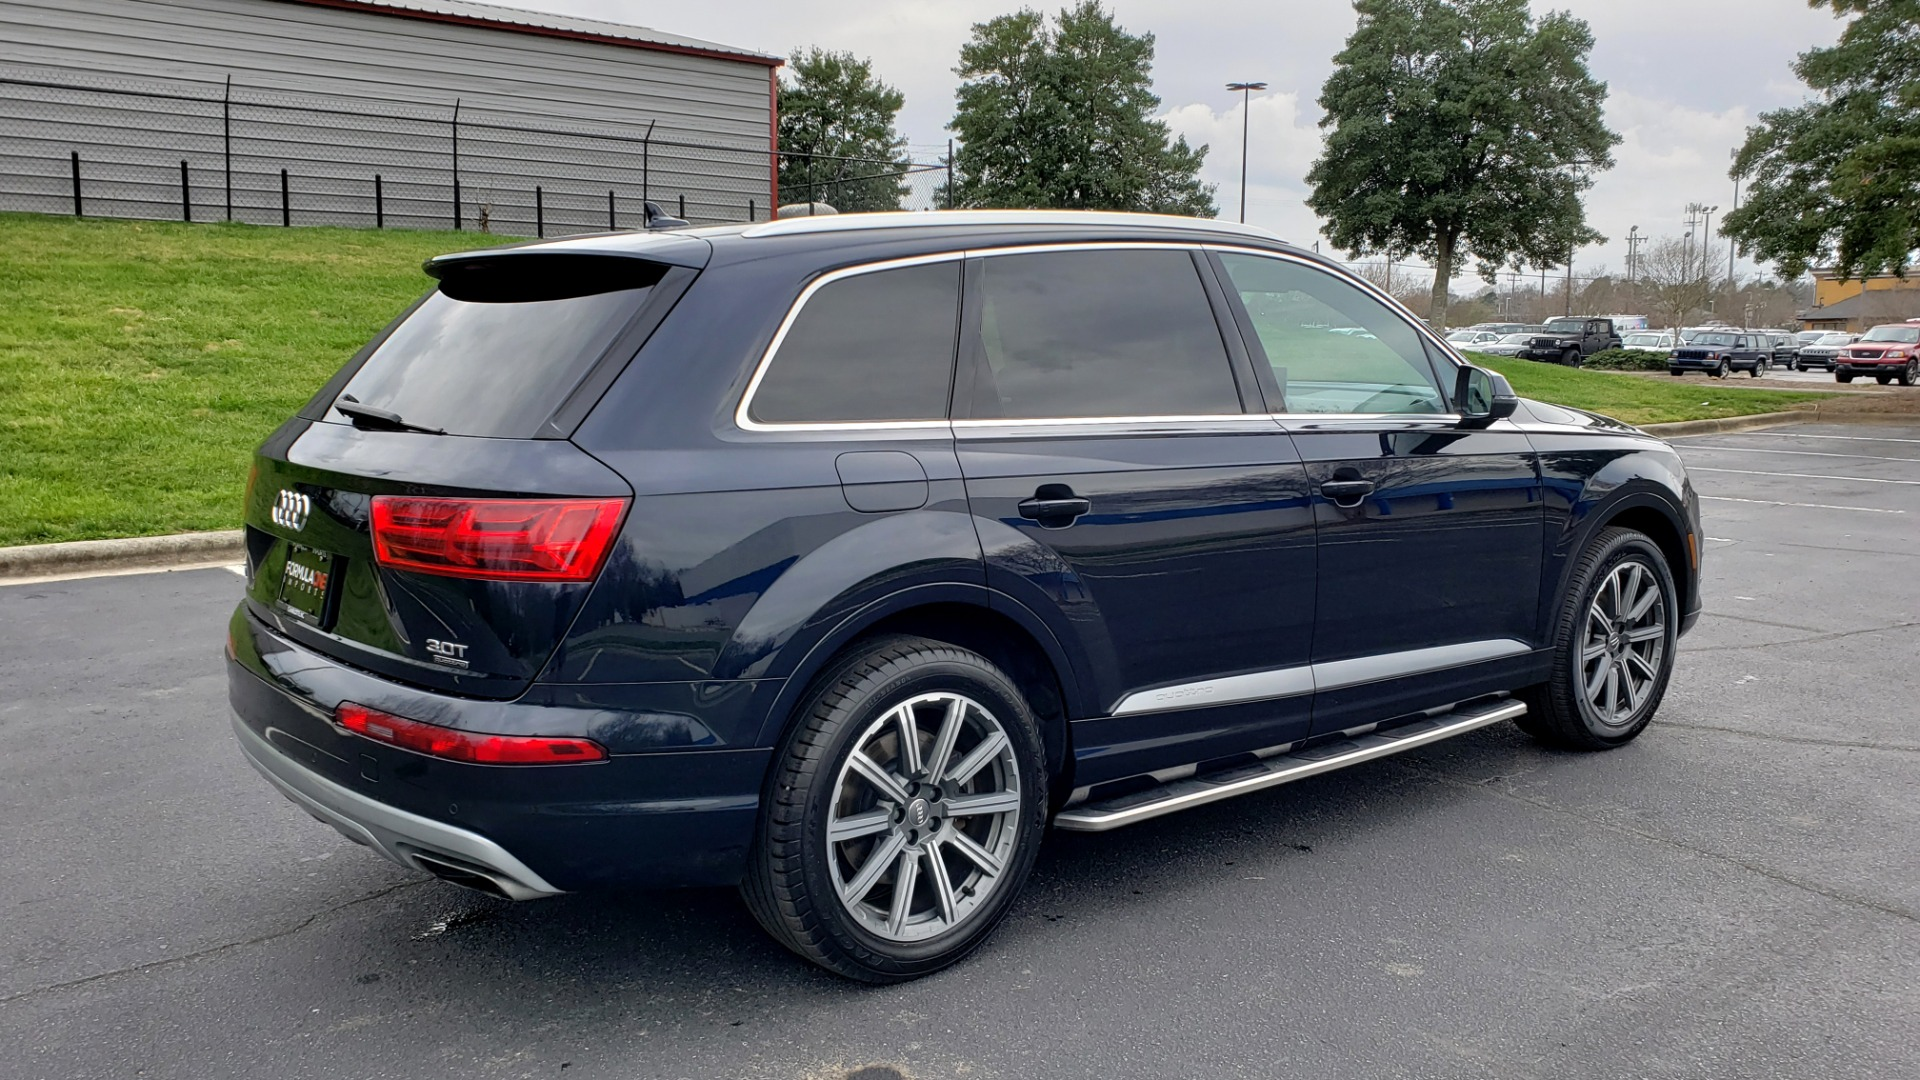 Used 2017 Audi Q7 PRESTIGE 3.0T / AWD / NAV / PANO-ROOF / HTD STS / BOSE / VISION for sale Sold at Formula Imports in Charlotte NC 28227 6